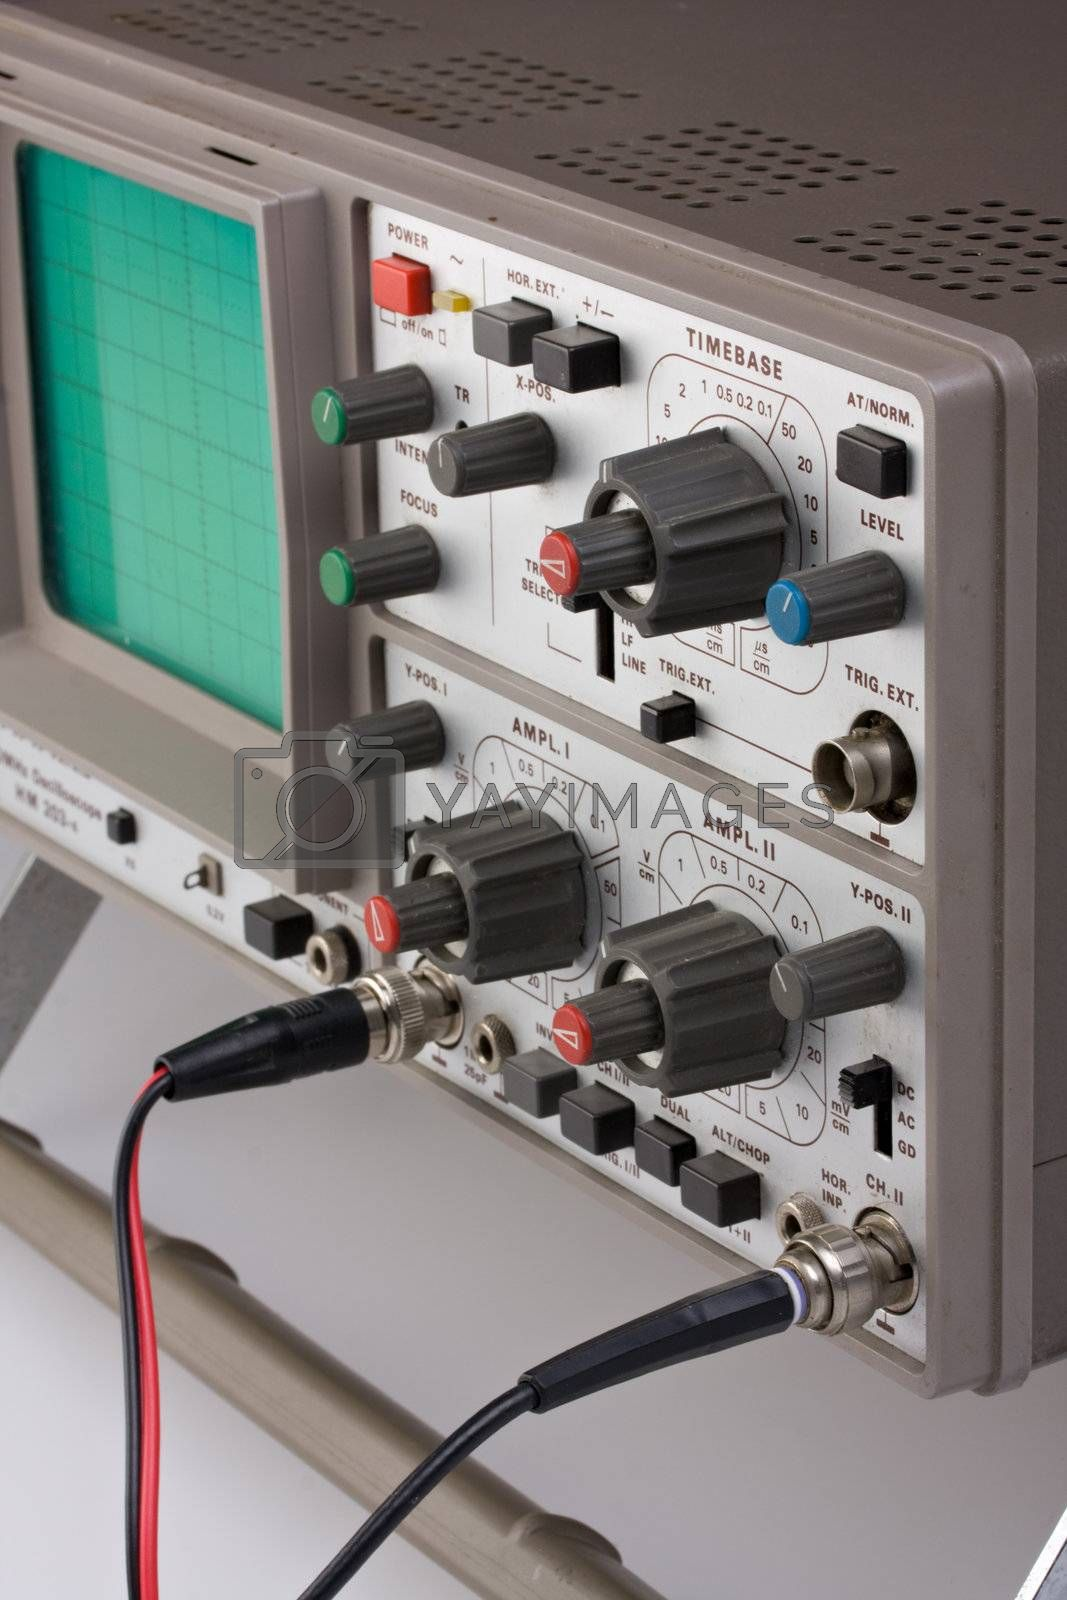 Royalty free image of analogue oscilloscope on grey background by bernjuer